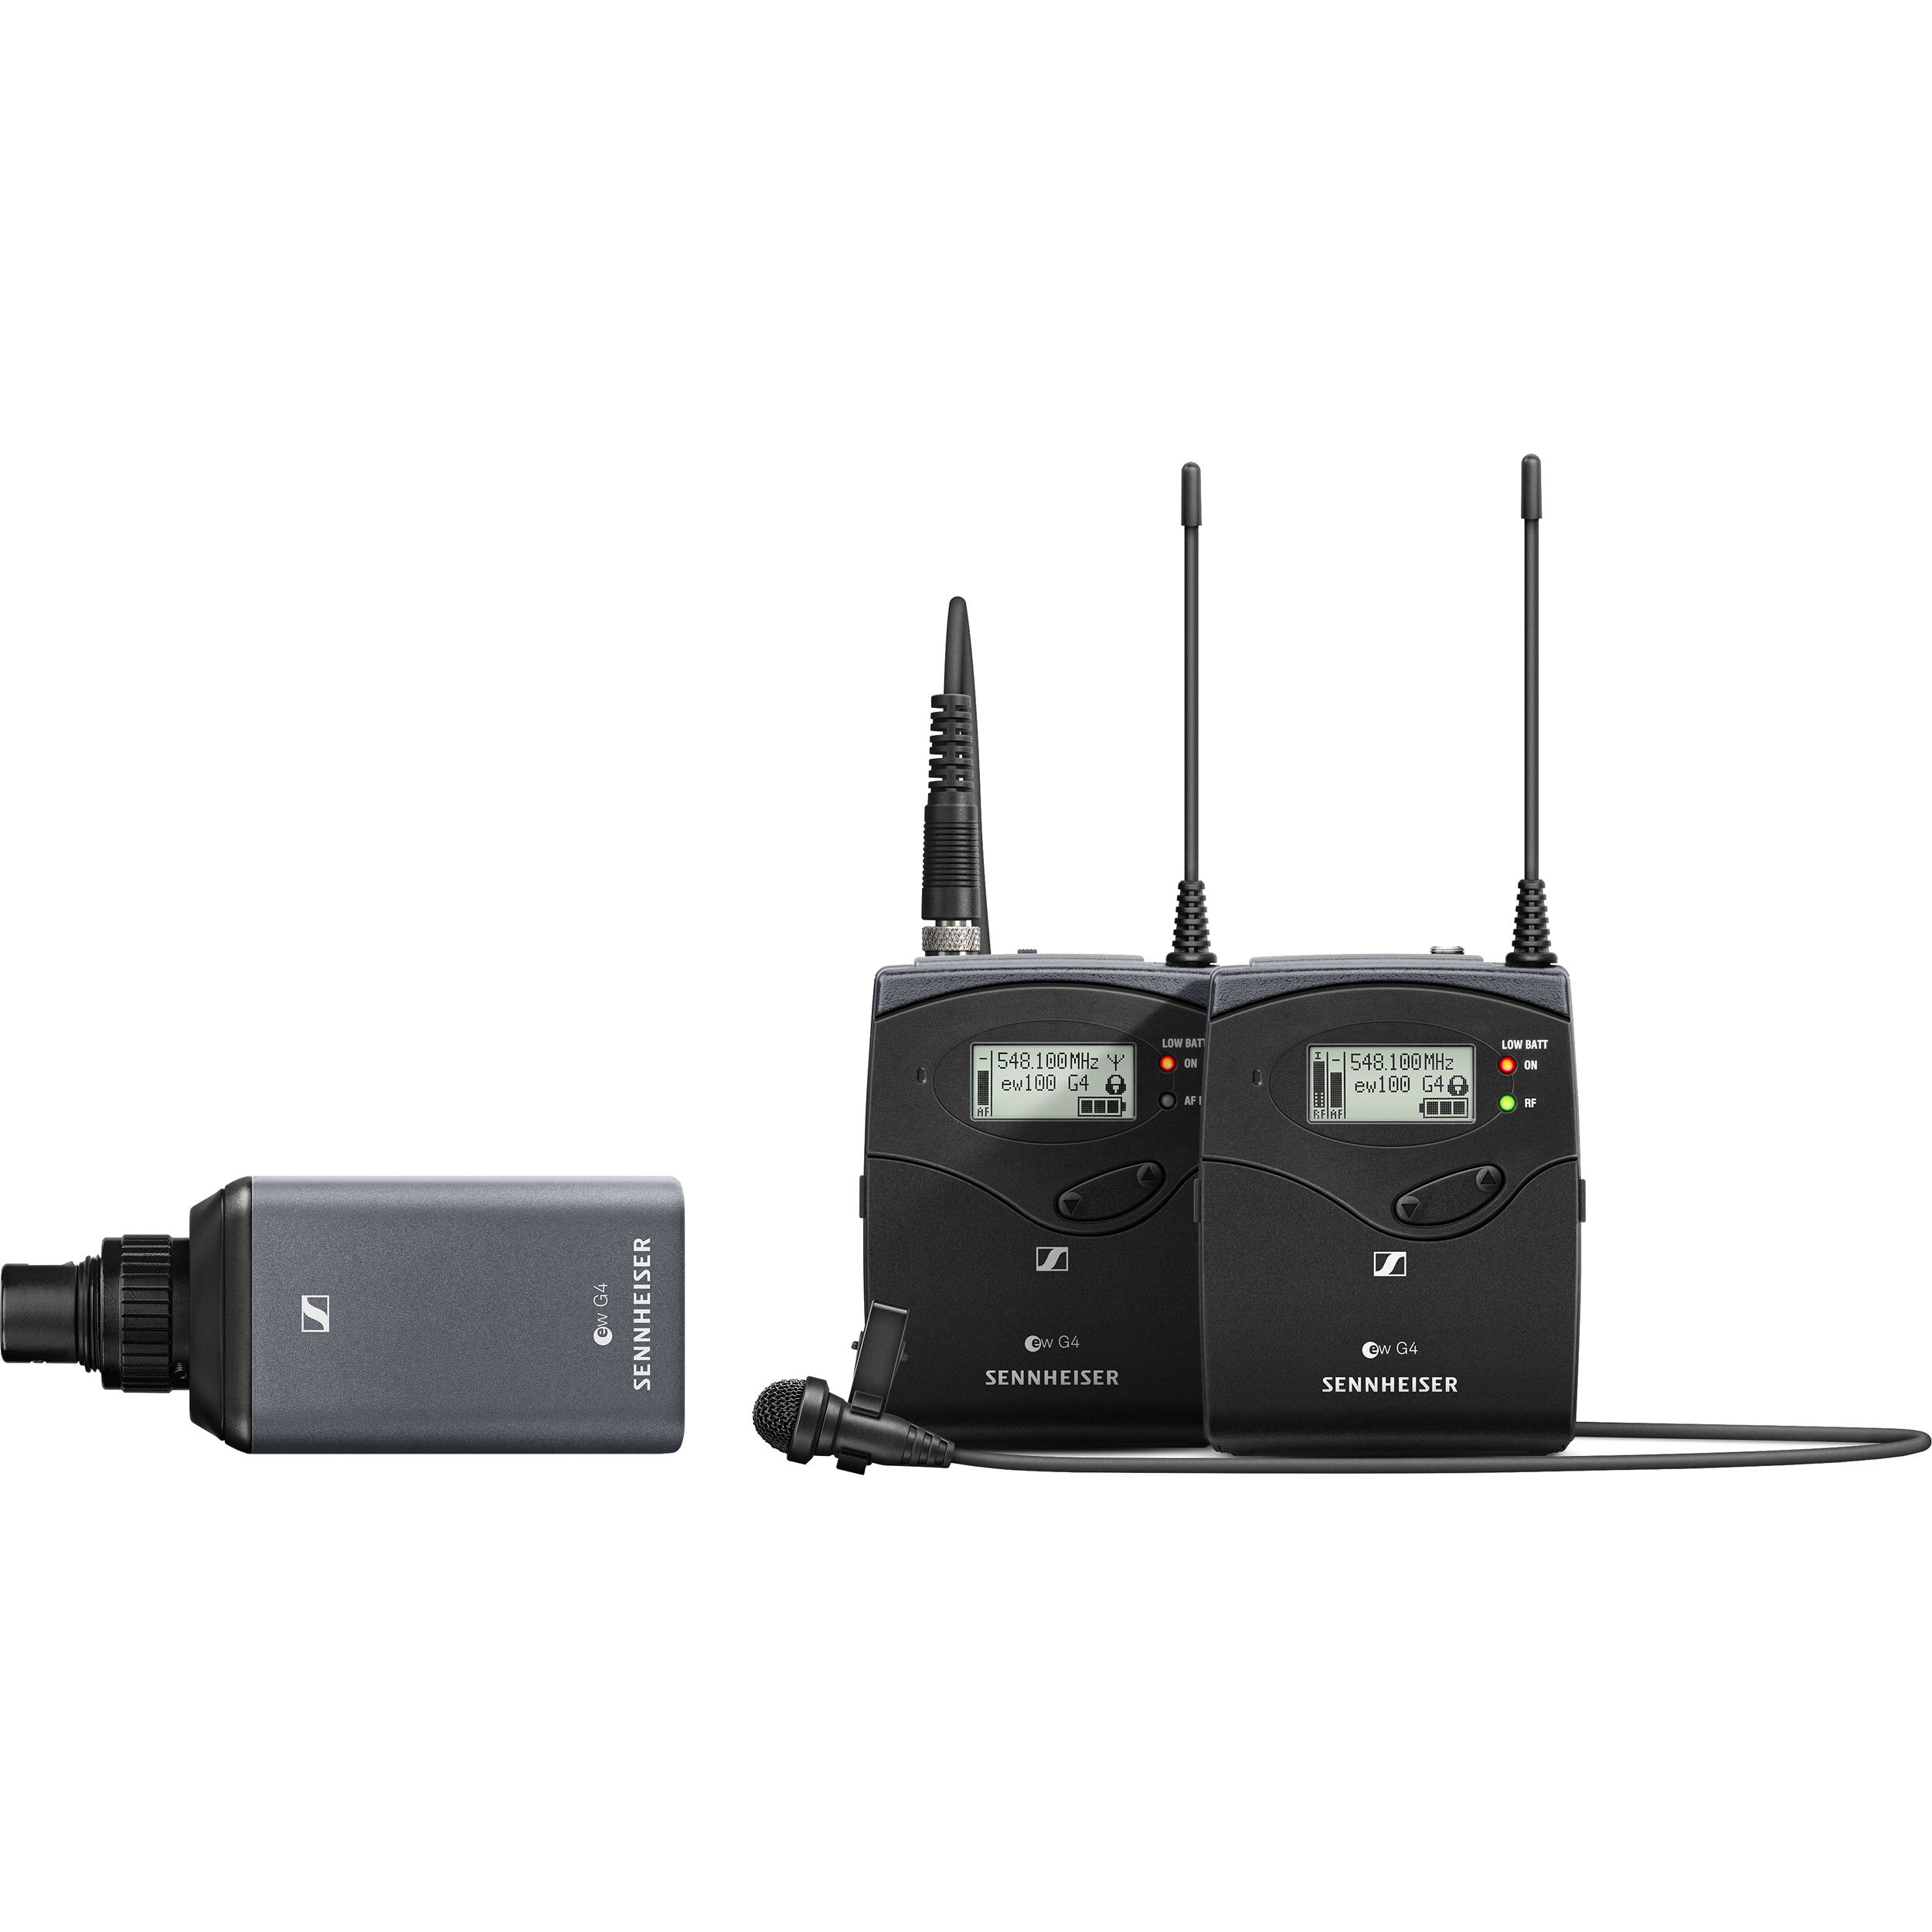 Sennheiser Ew 100 Eng G4 Wireless Microphone A Bh Mic Mini 35mm Portable With Clip For Smartphone Laptop Tablet Pc Combo System 516 To 558 Mhz